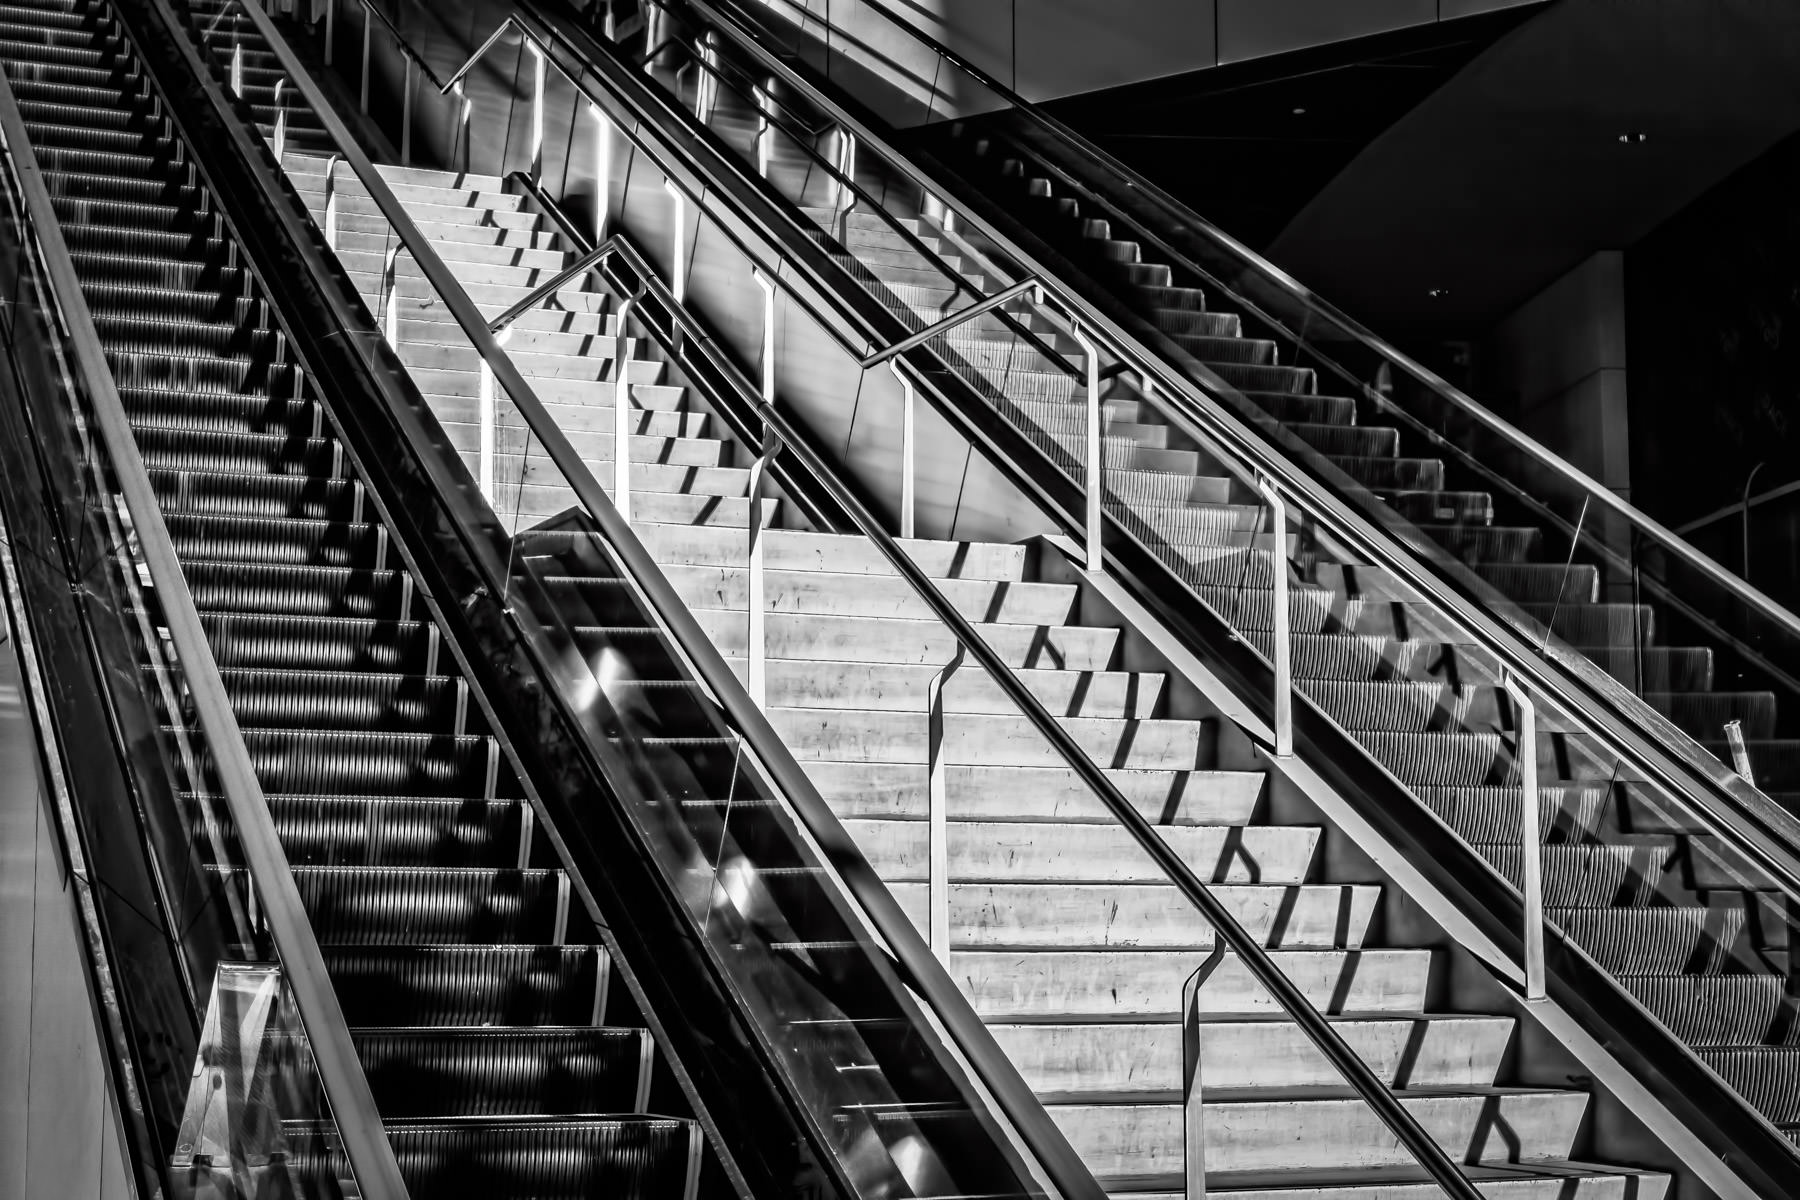 Stairs and escalators spotted along The Strip, Las Vegas.